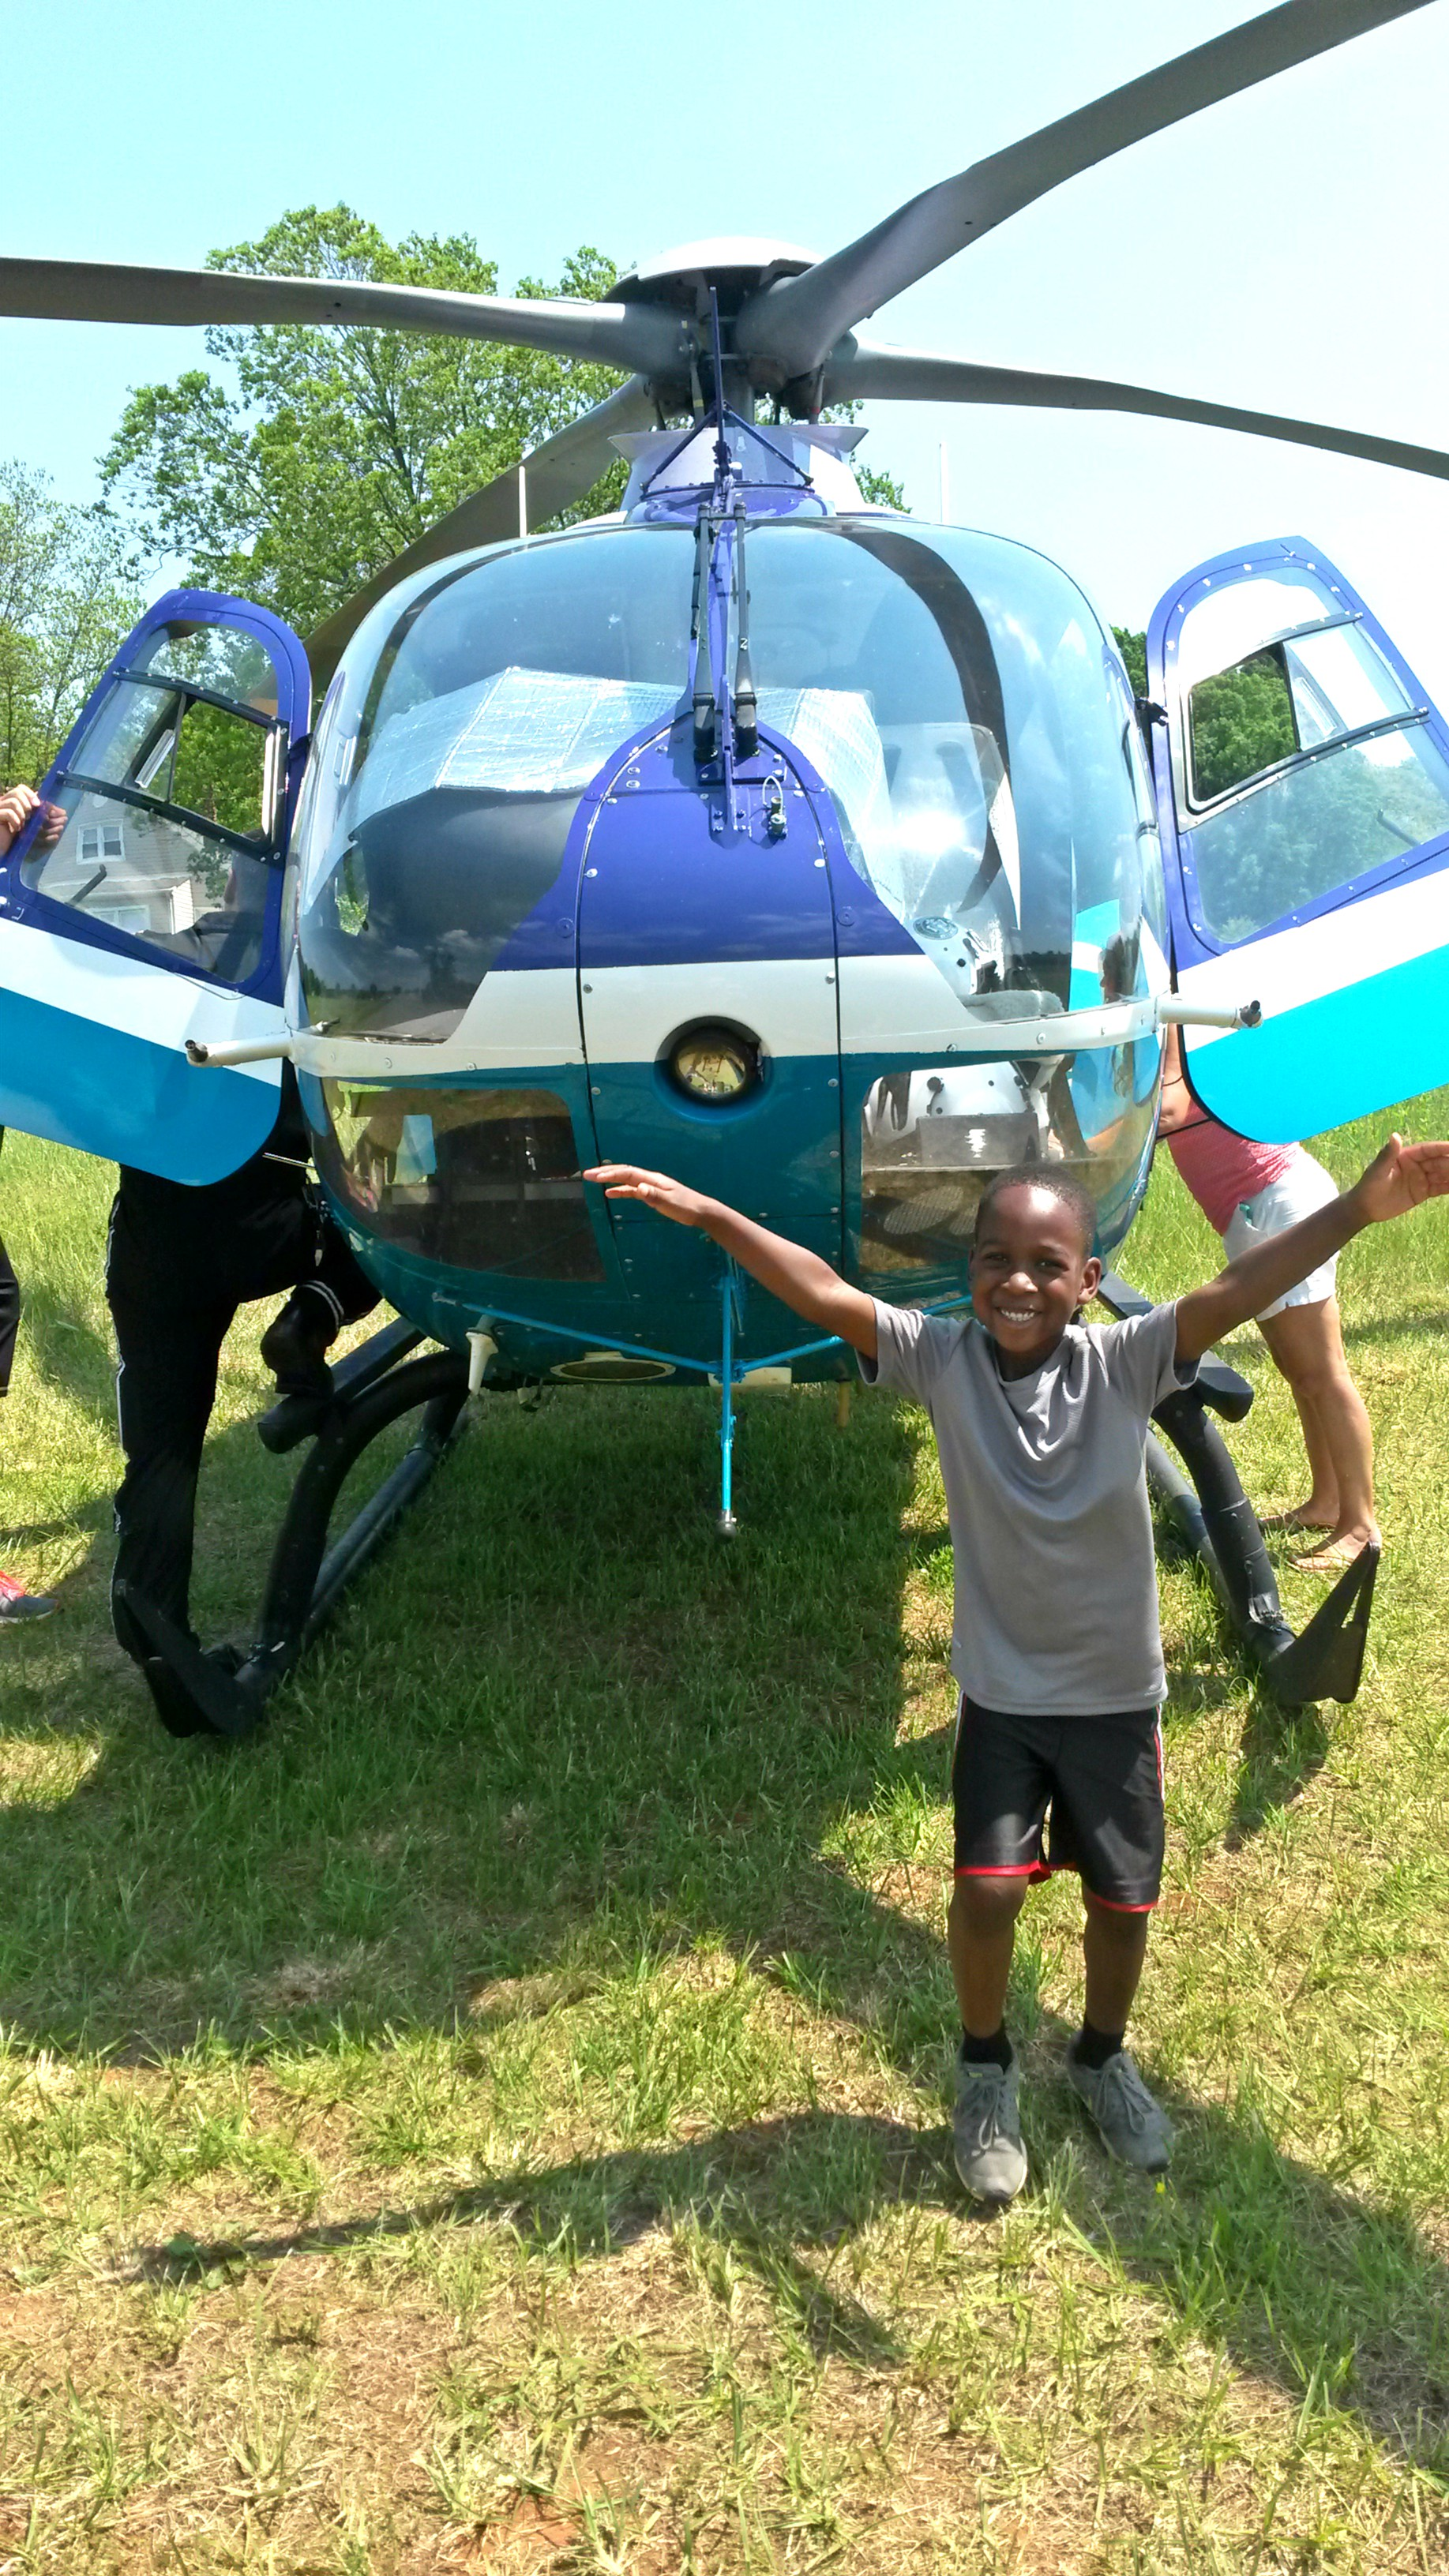 Tre got to check out a medical helicopter when he visited a fire station— looks like he had a great time!